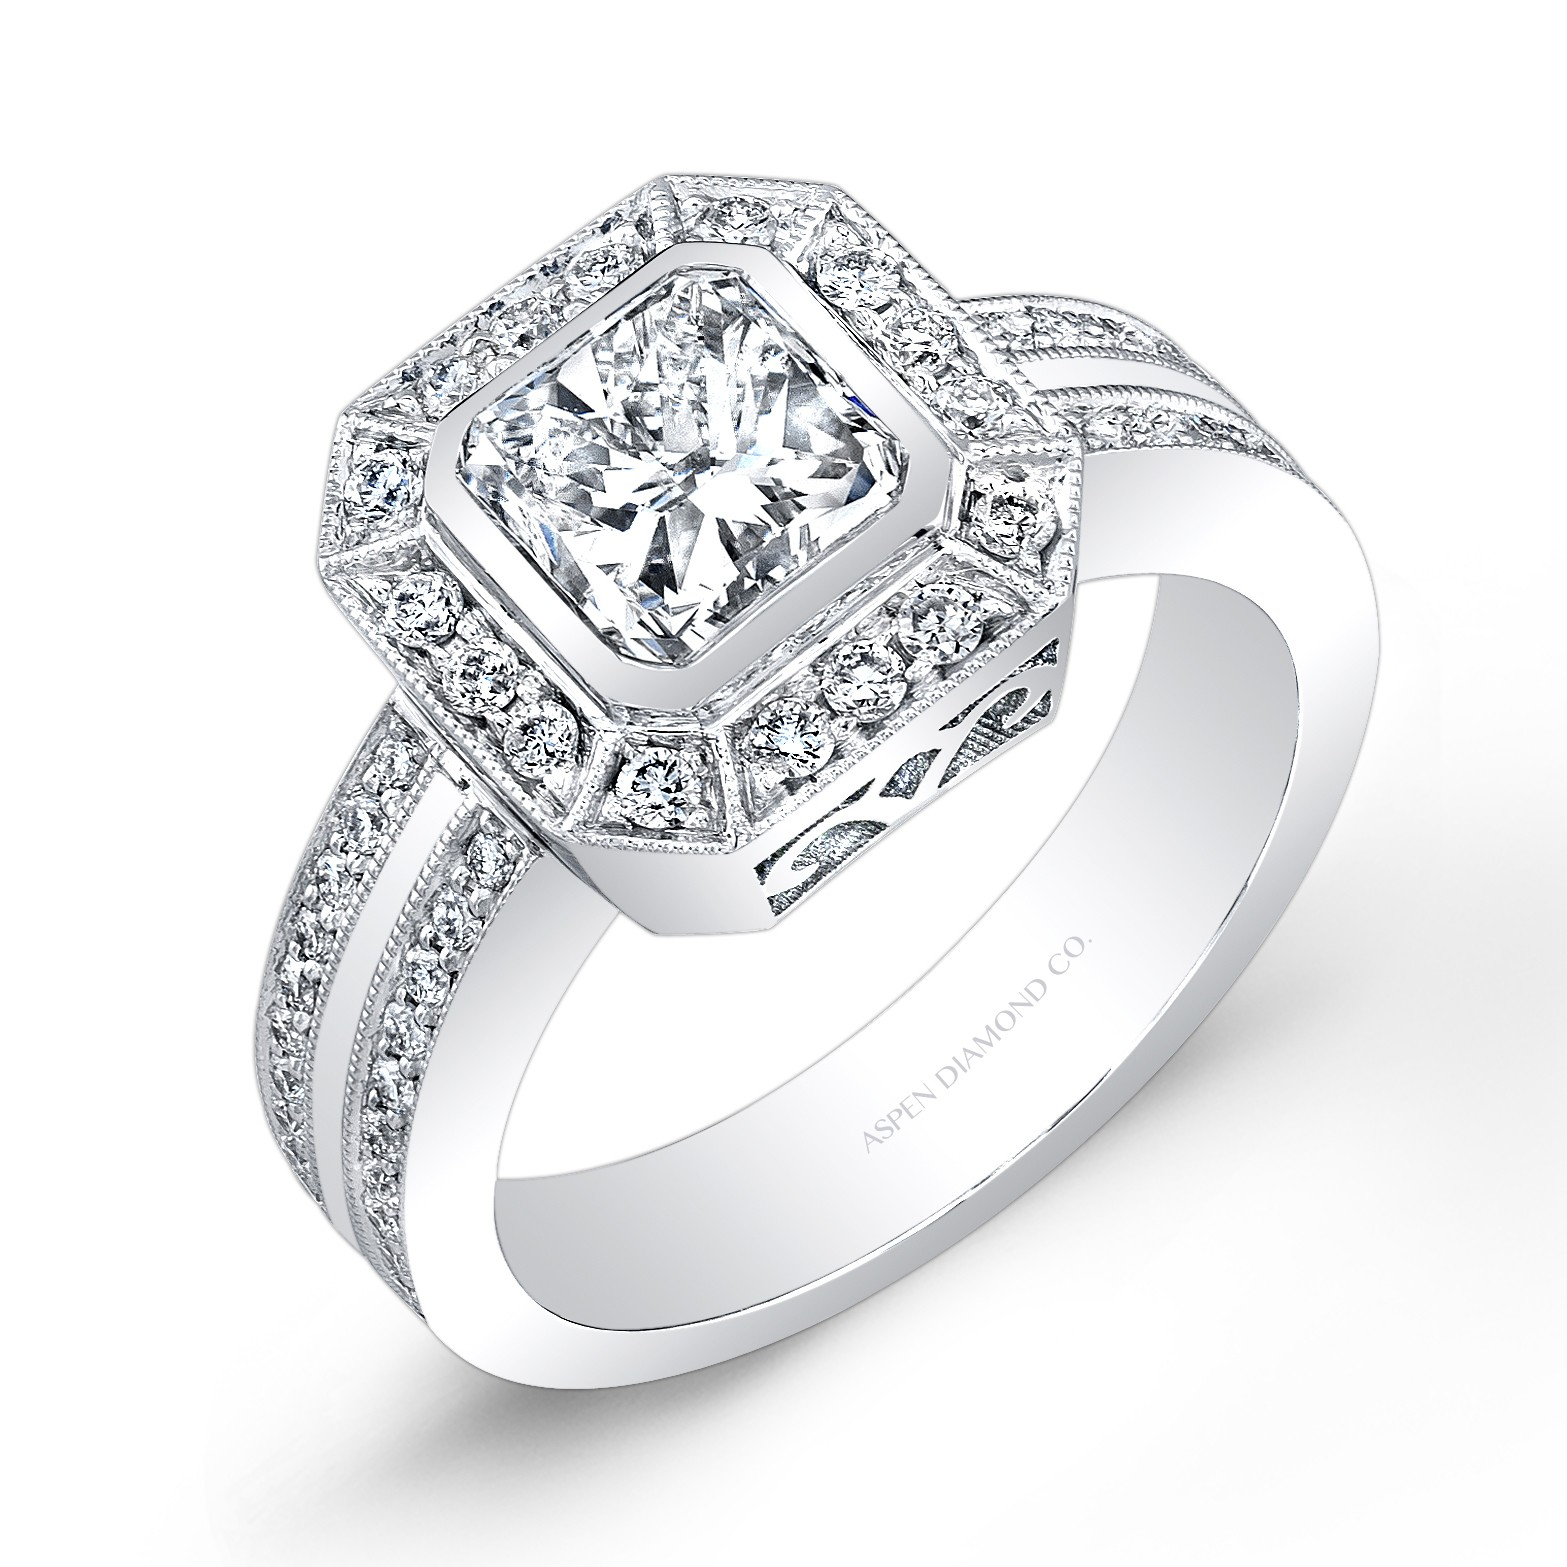 Radiant Cut Diamond Engagement Ring in 18K White Gold